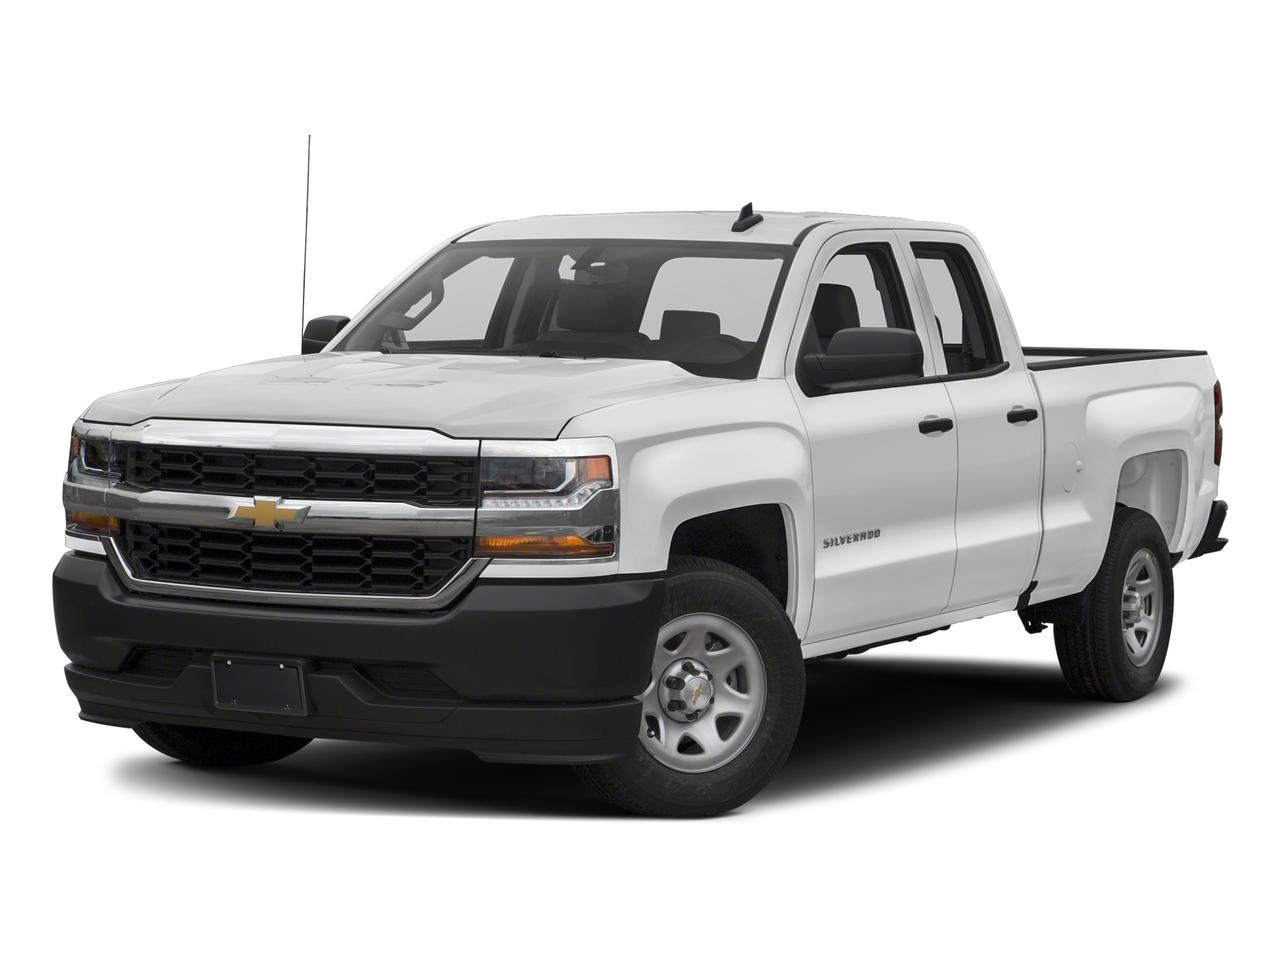 2018 Chevrolet Silverado 1500 Vehicle Photo in Houston, TX 77090